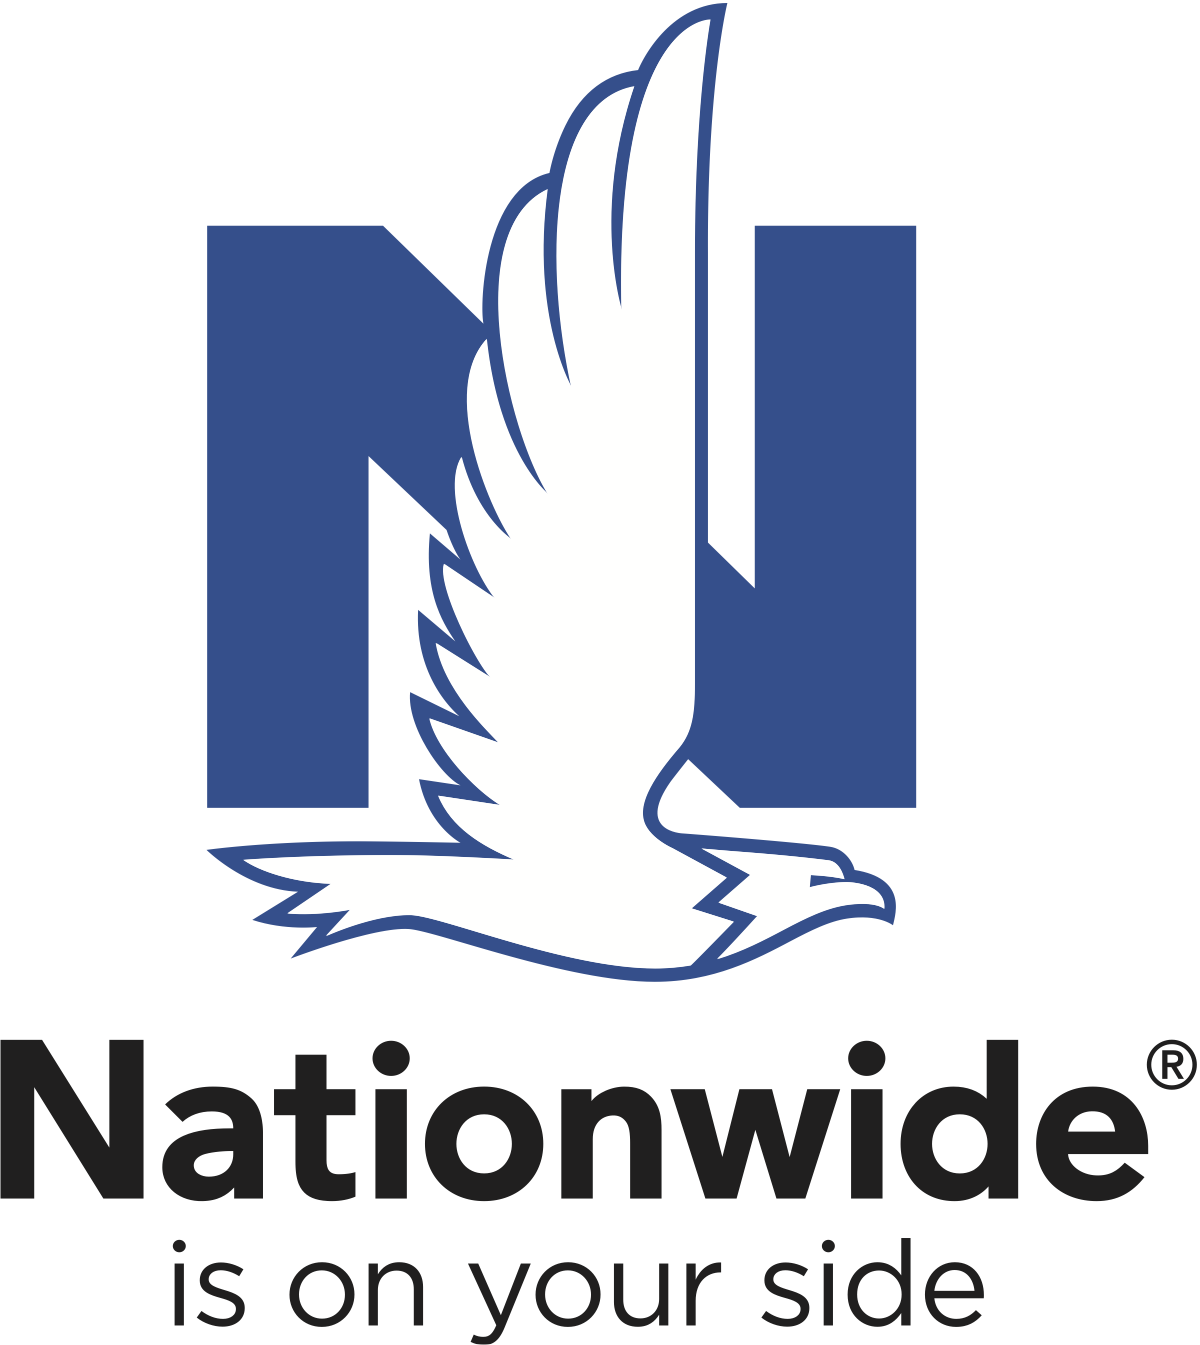 nationwide-vertical.png